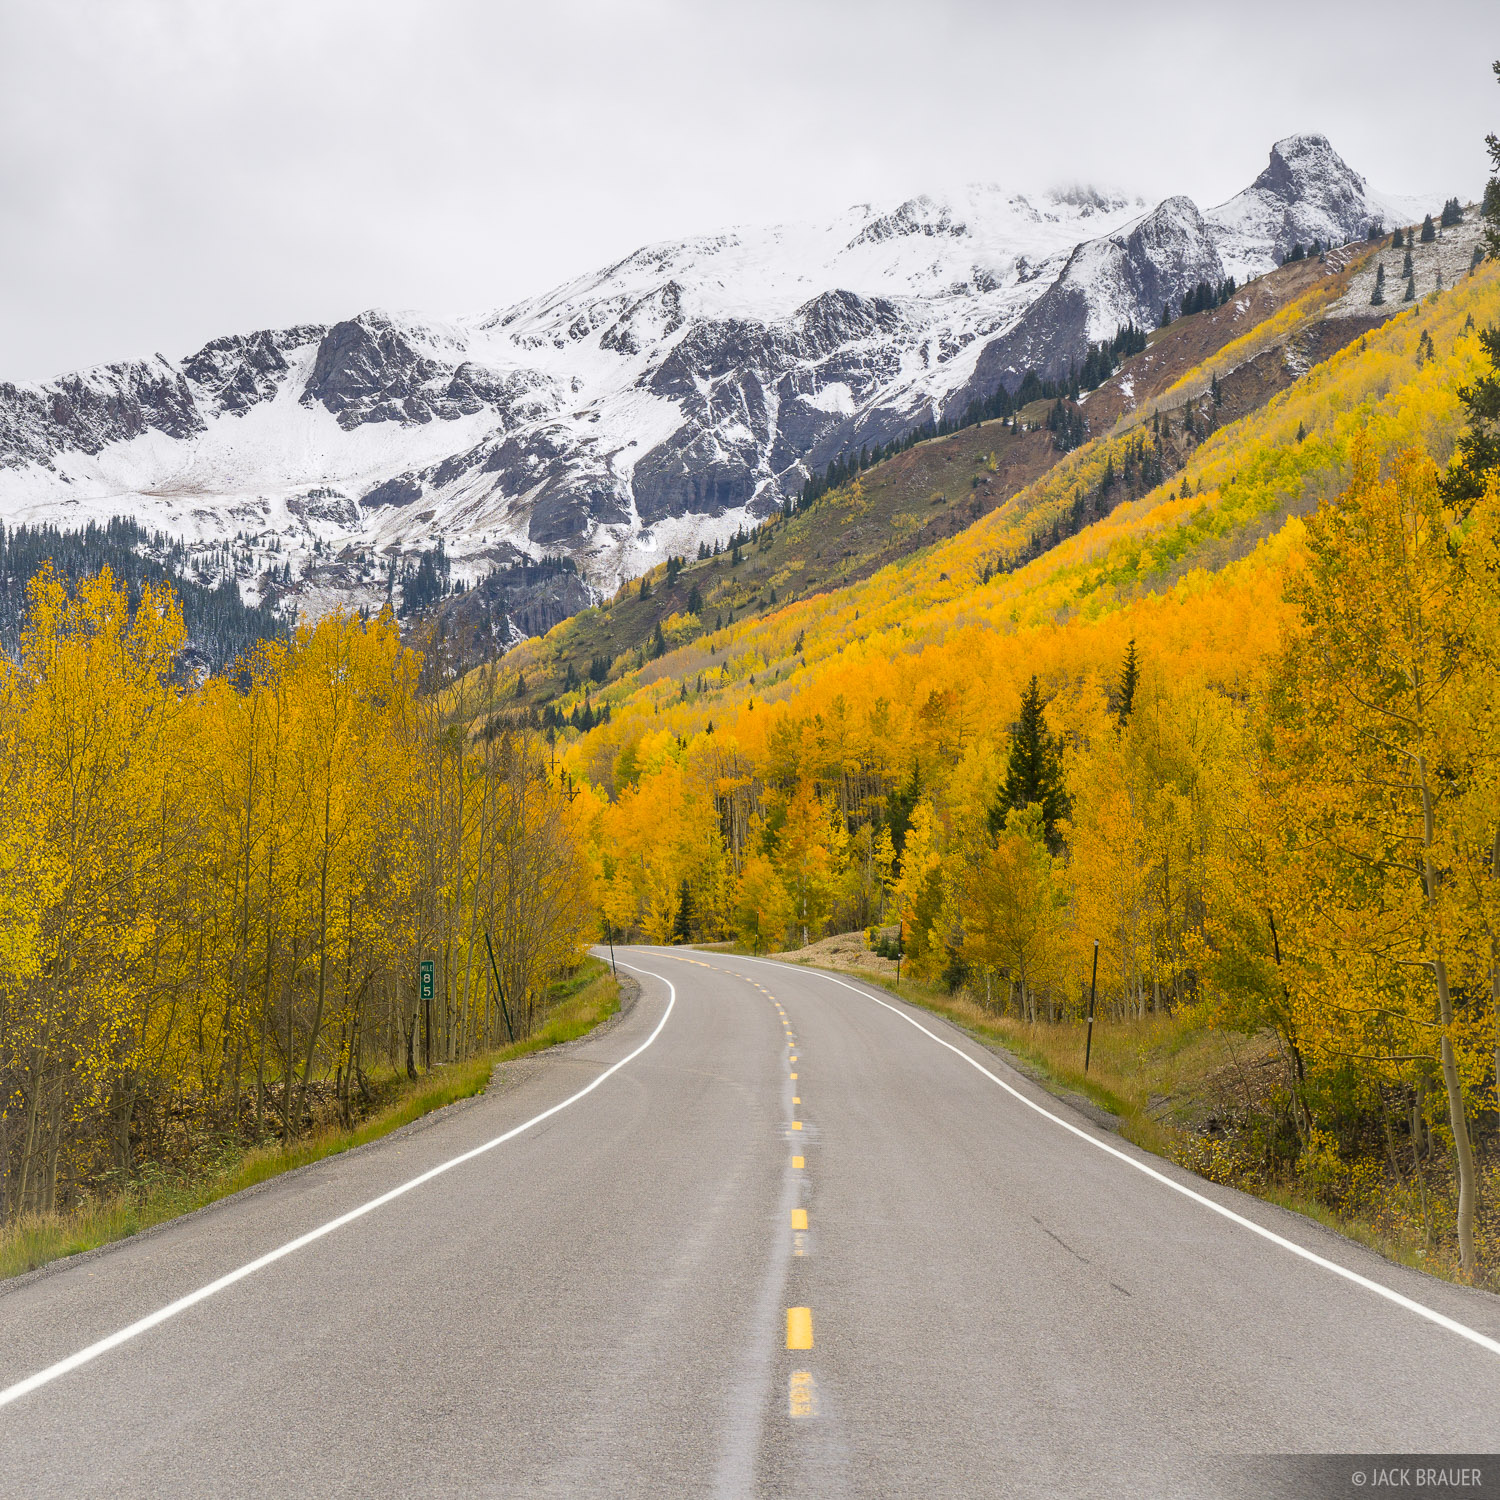 Colorado,Red Mountain Pass,San Juan Mountains, Million Dollar Highway, road, aspens, photo